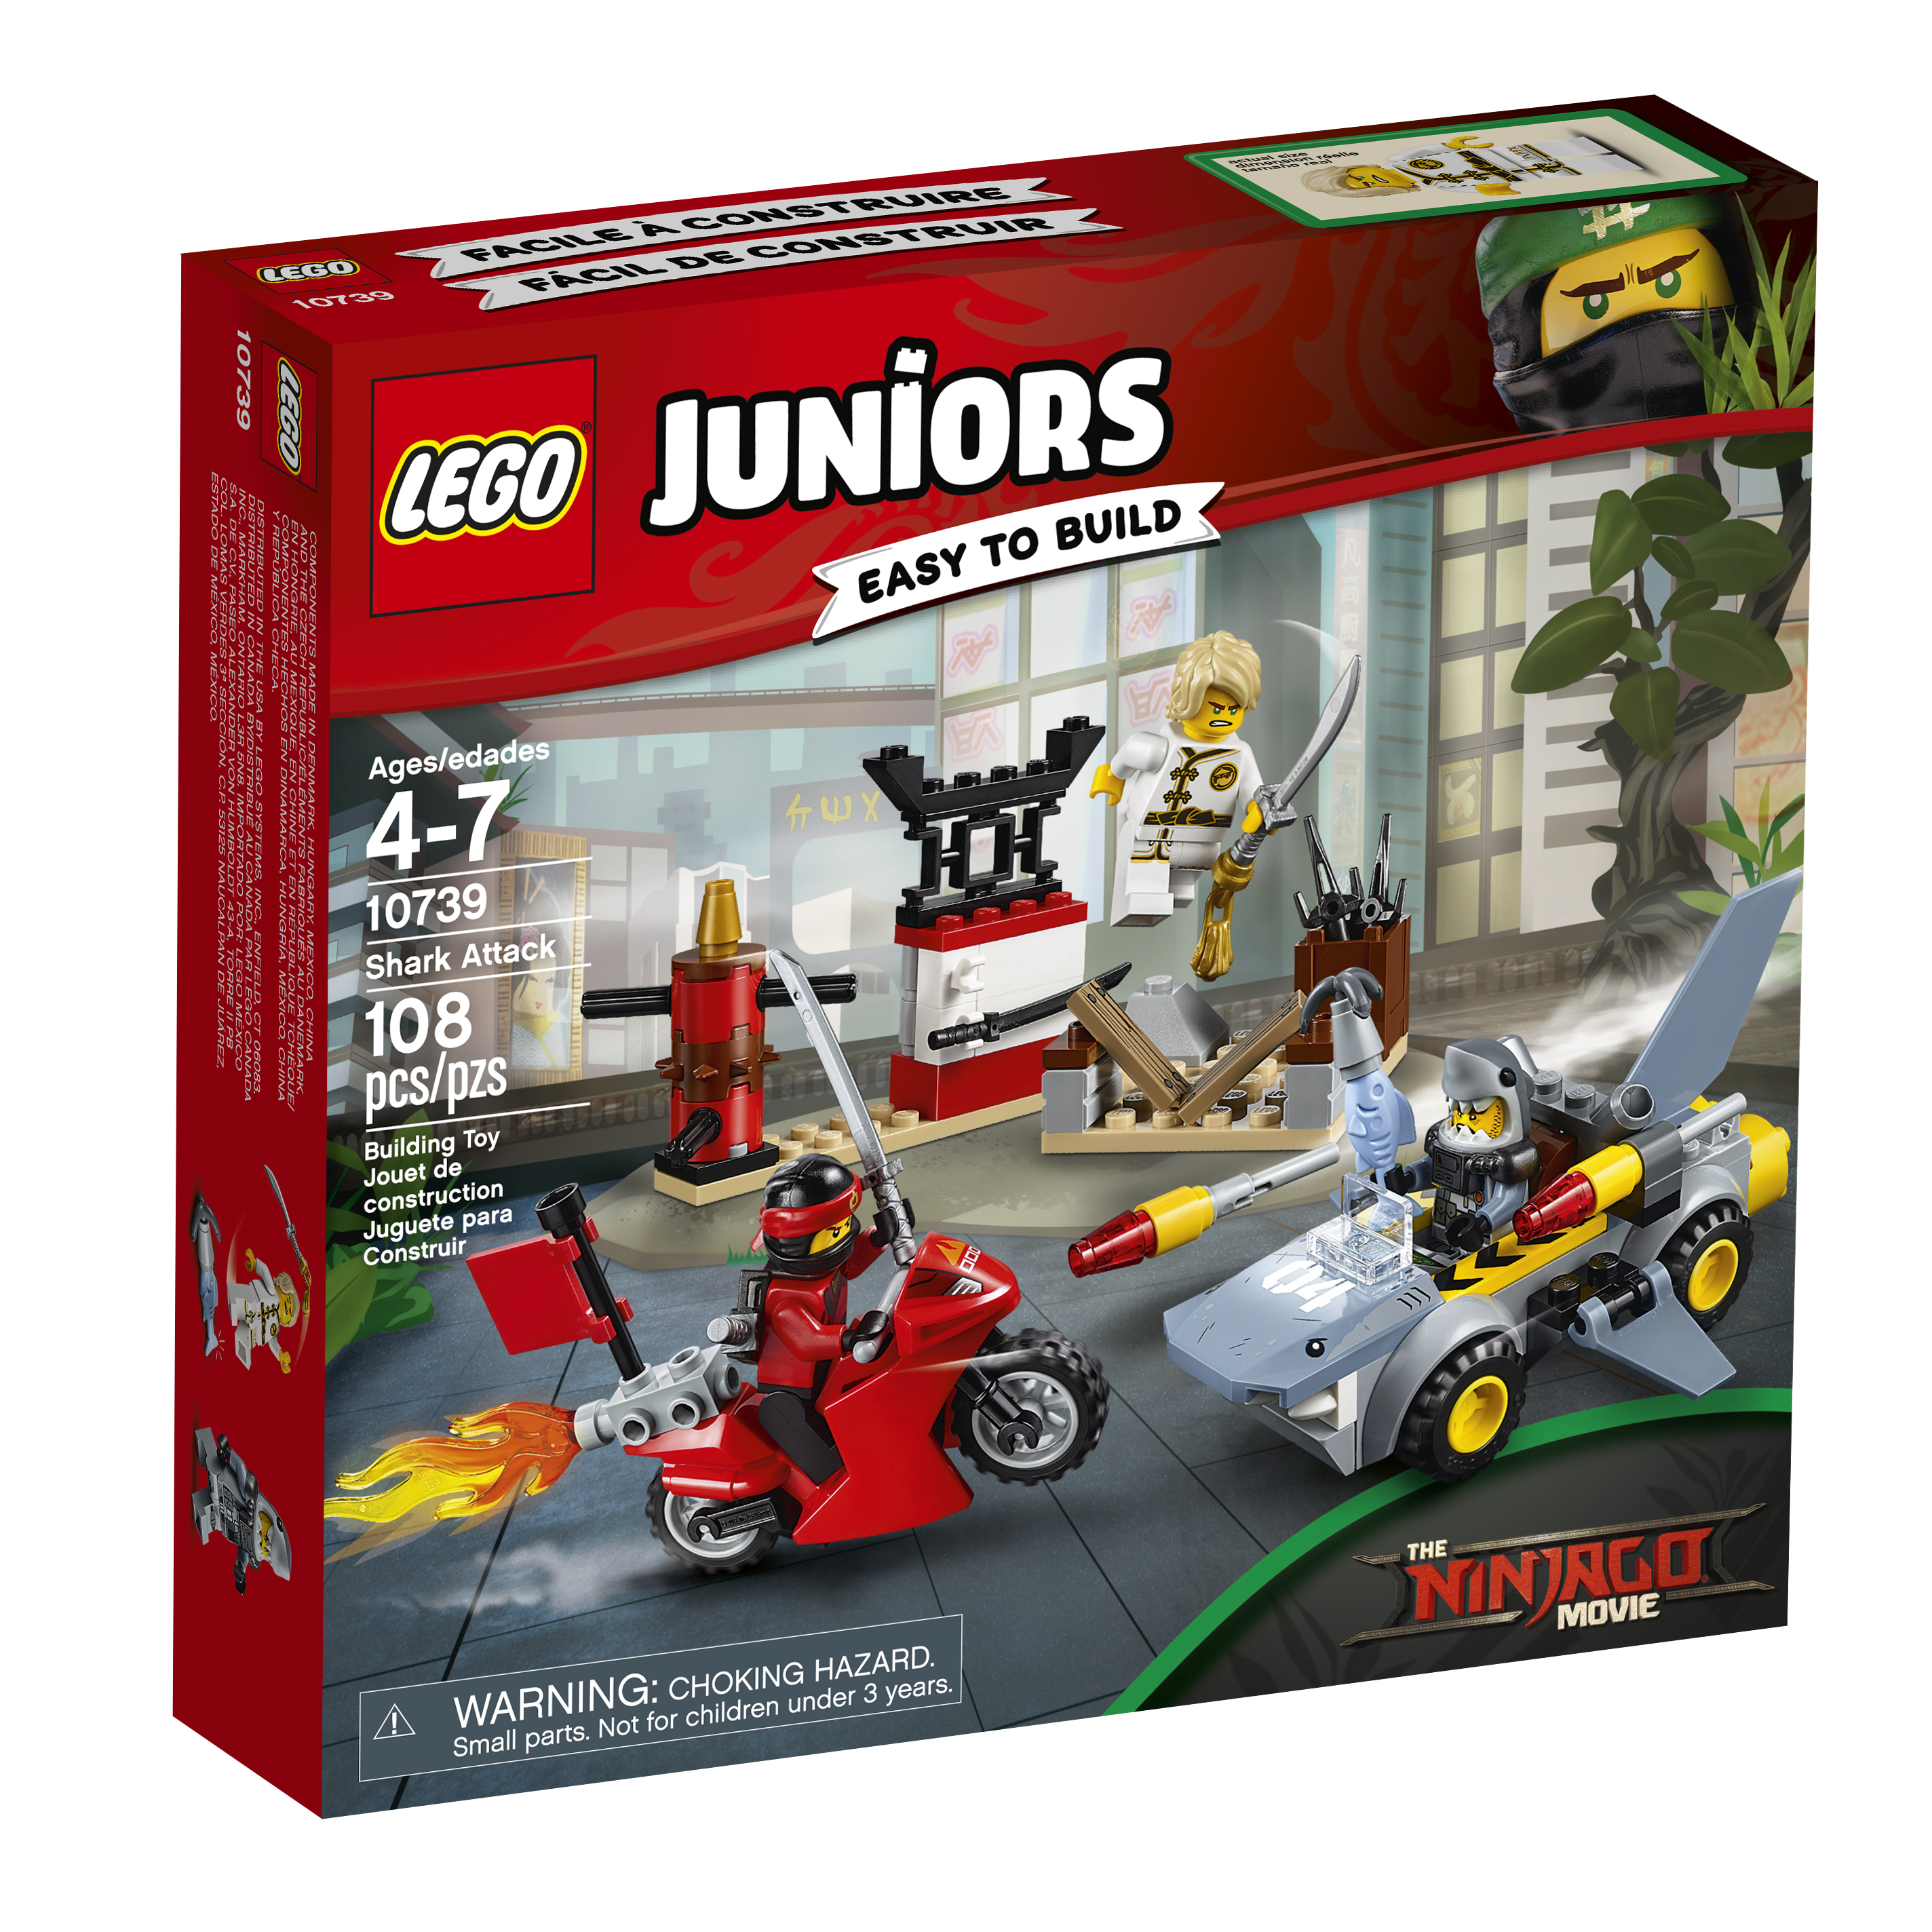 LEGO Juniors Ninjago Movie Shark Attack 10739 (108 Pieces) - Walmart.com -  Walmart.com